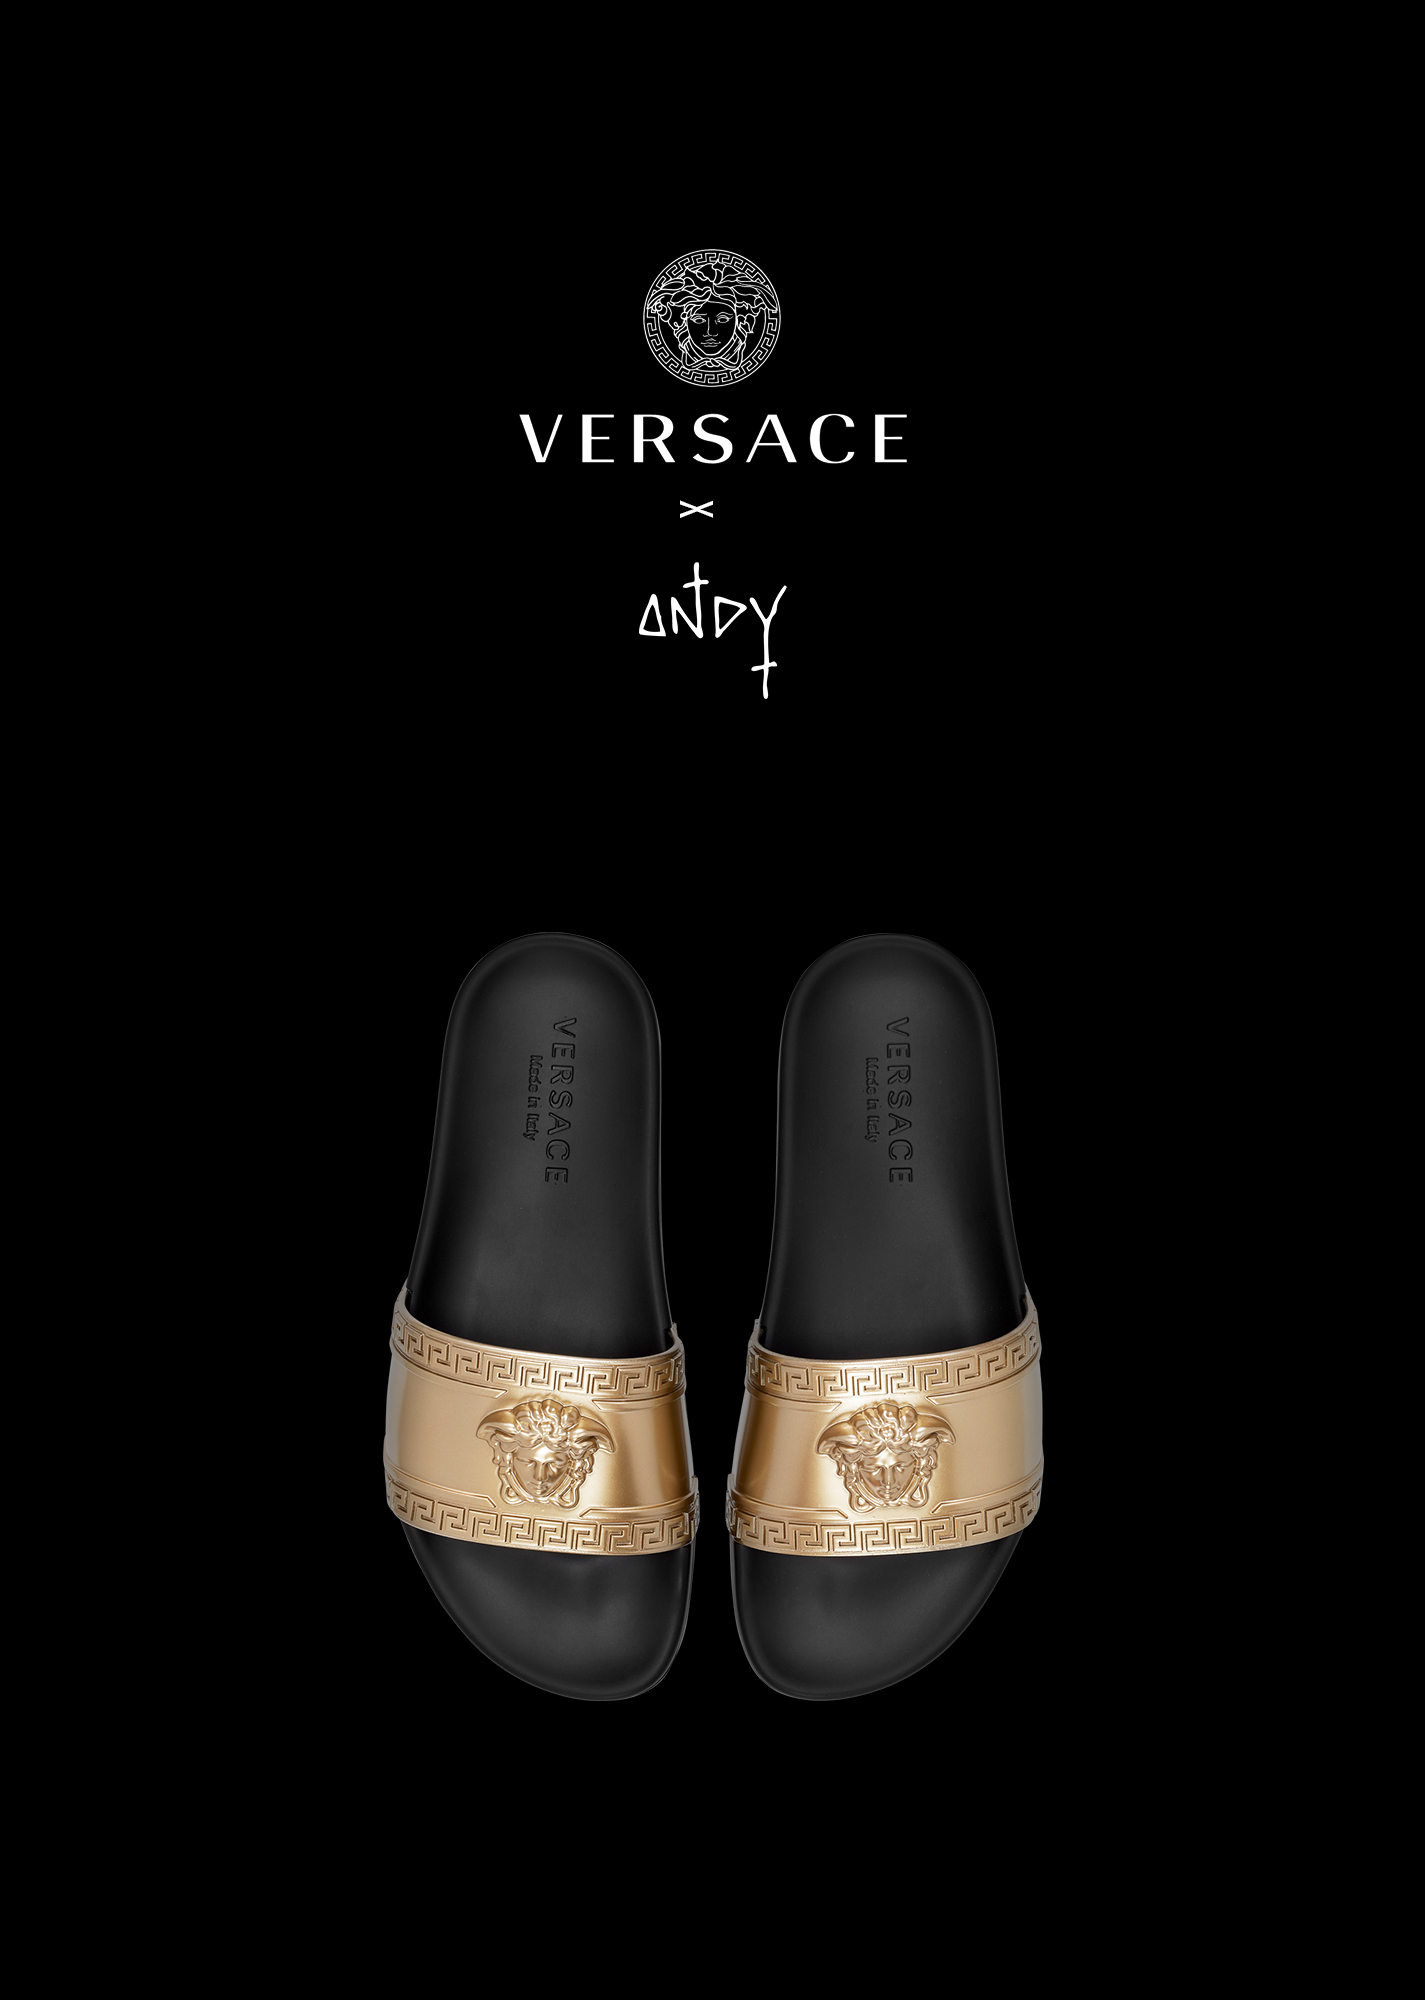 VERSACE x ANDY